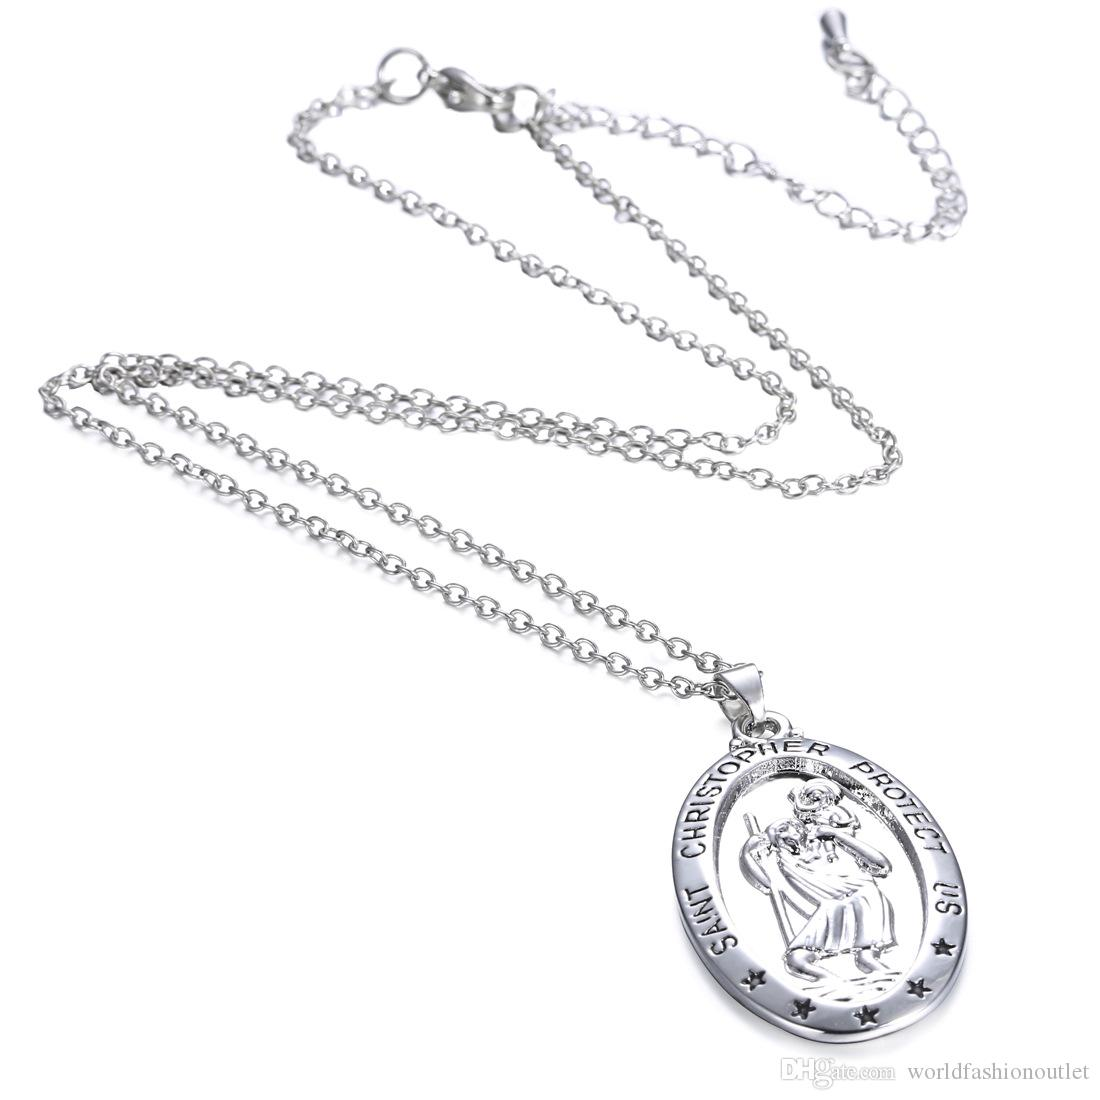 Necklaces Pendants Charm Women Choker Chunky Statement Bib Chain Necklace St CHRISTOPHER PROTECT US Necklaces Silver Saint Jewelry Free DHL